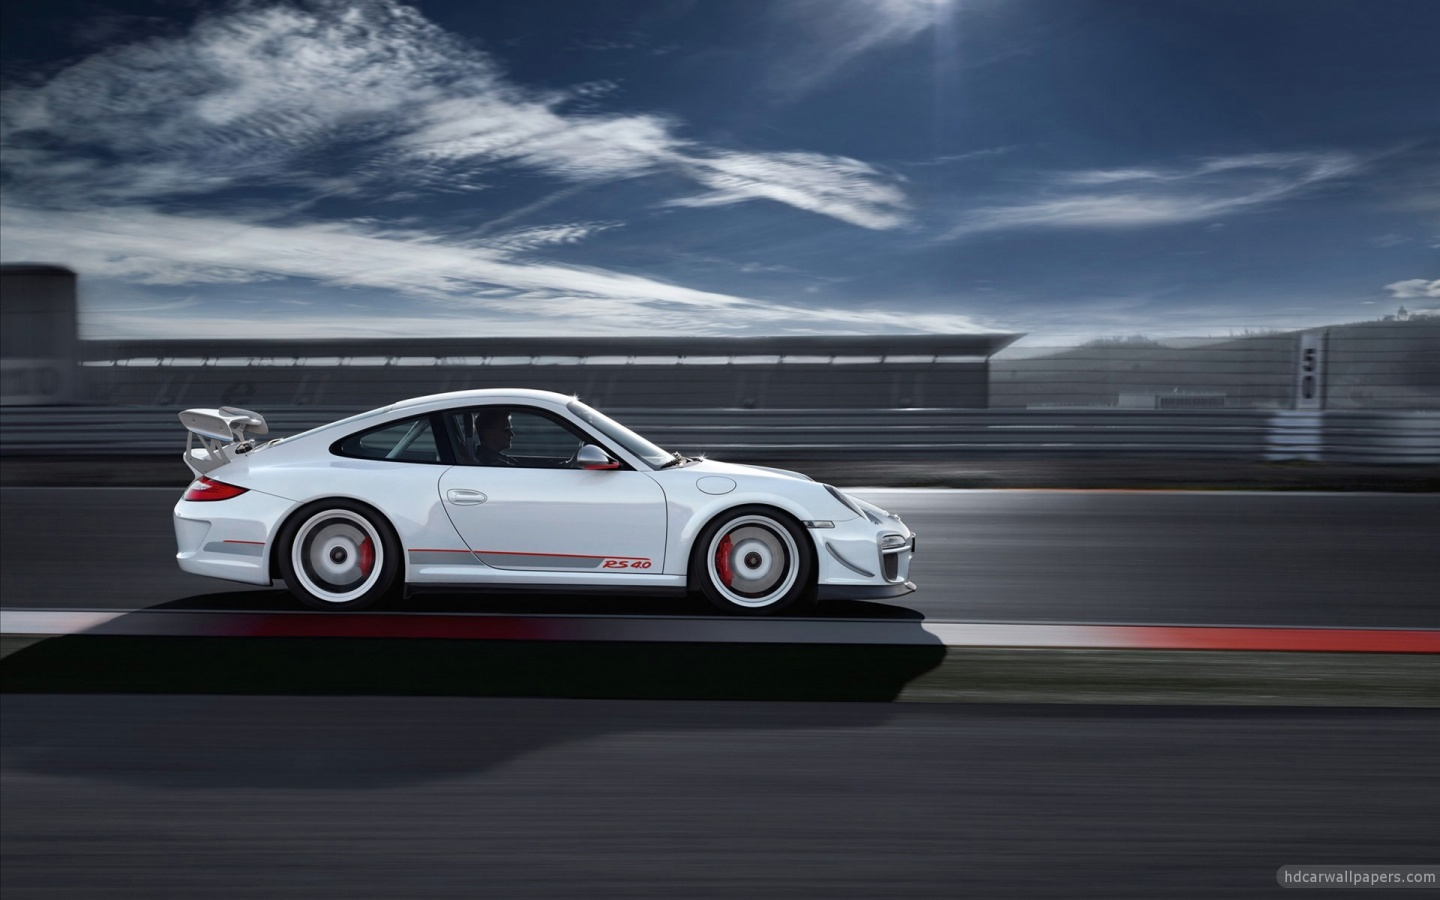 2012 Porsche 911 GT3 RS4 Wallpaper in 1440x900 Resolution 1440x900